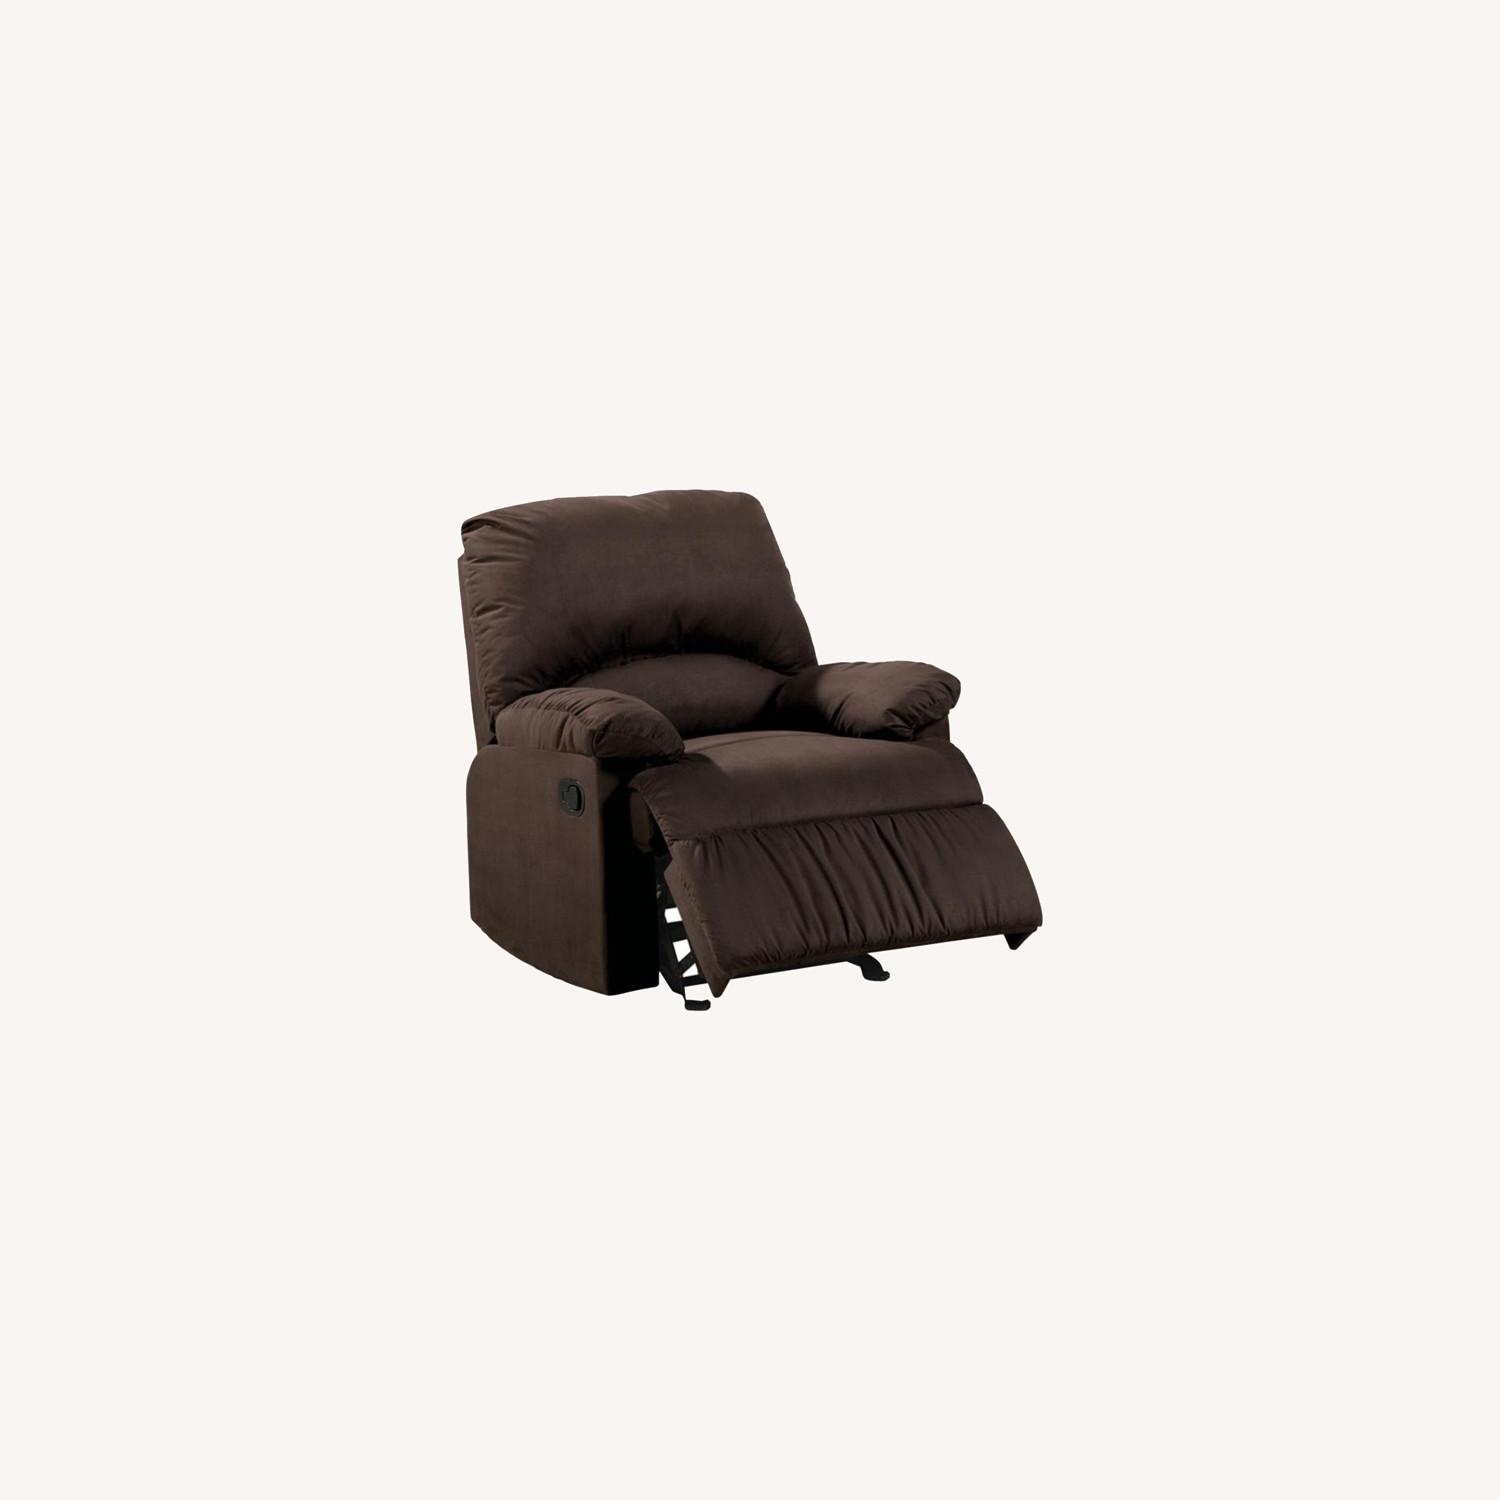 Glider Recliner In Chocolate Microfiber Upholstery - image-3